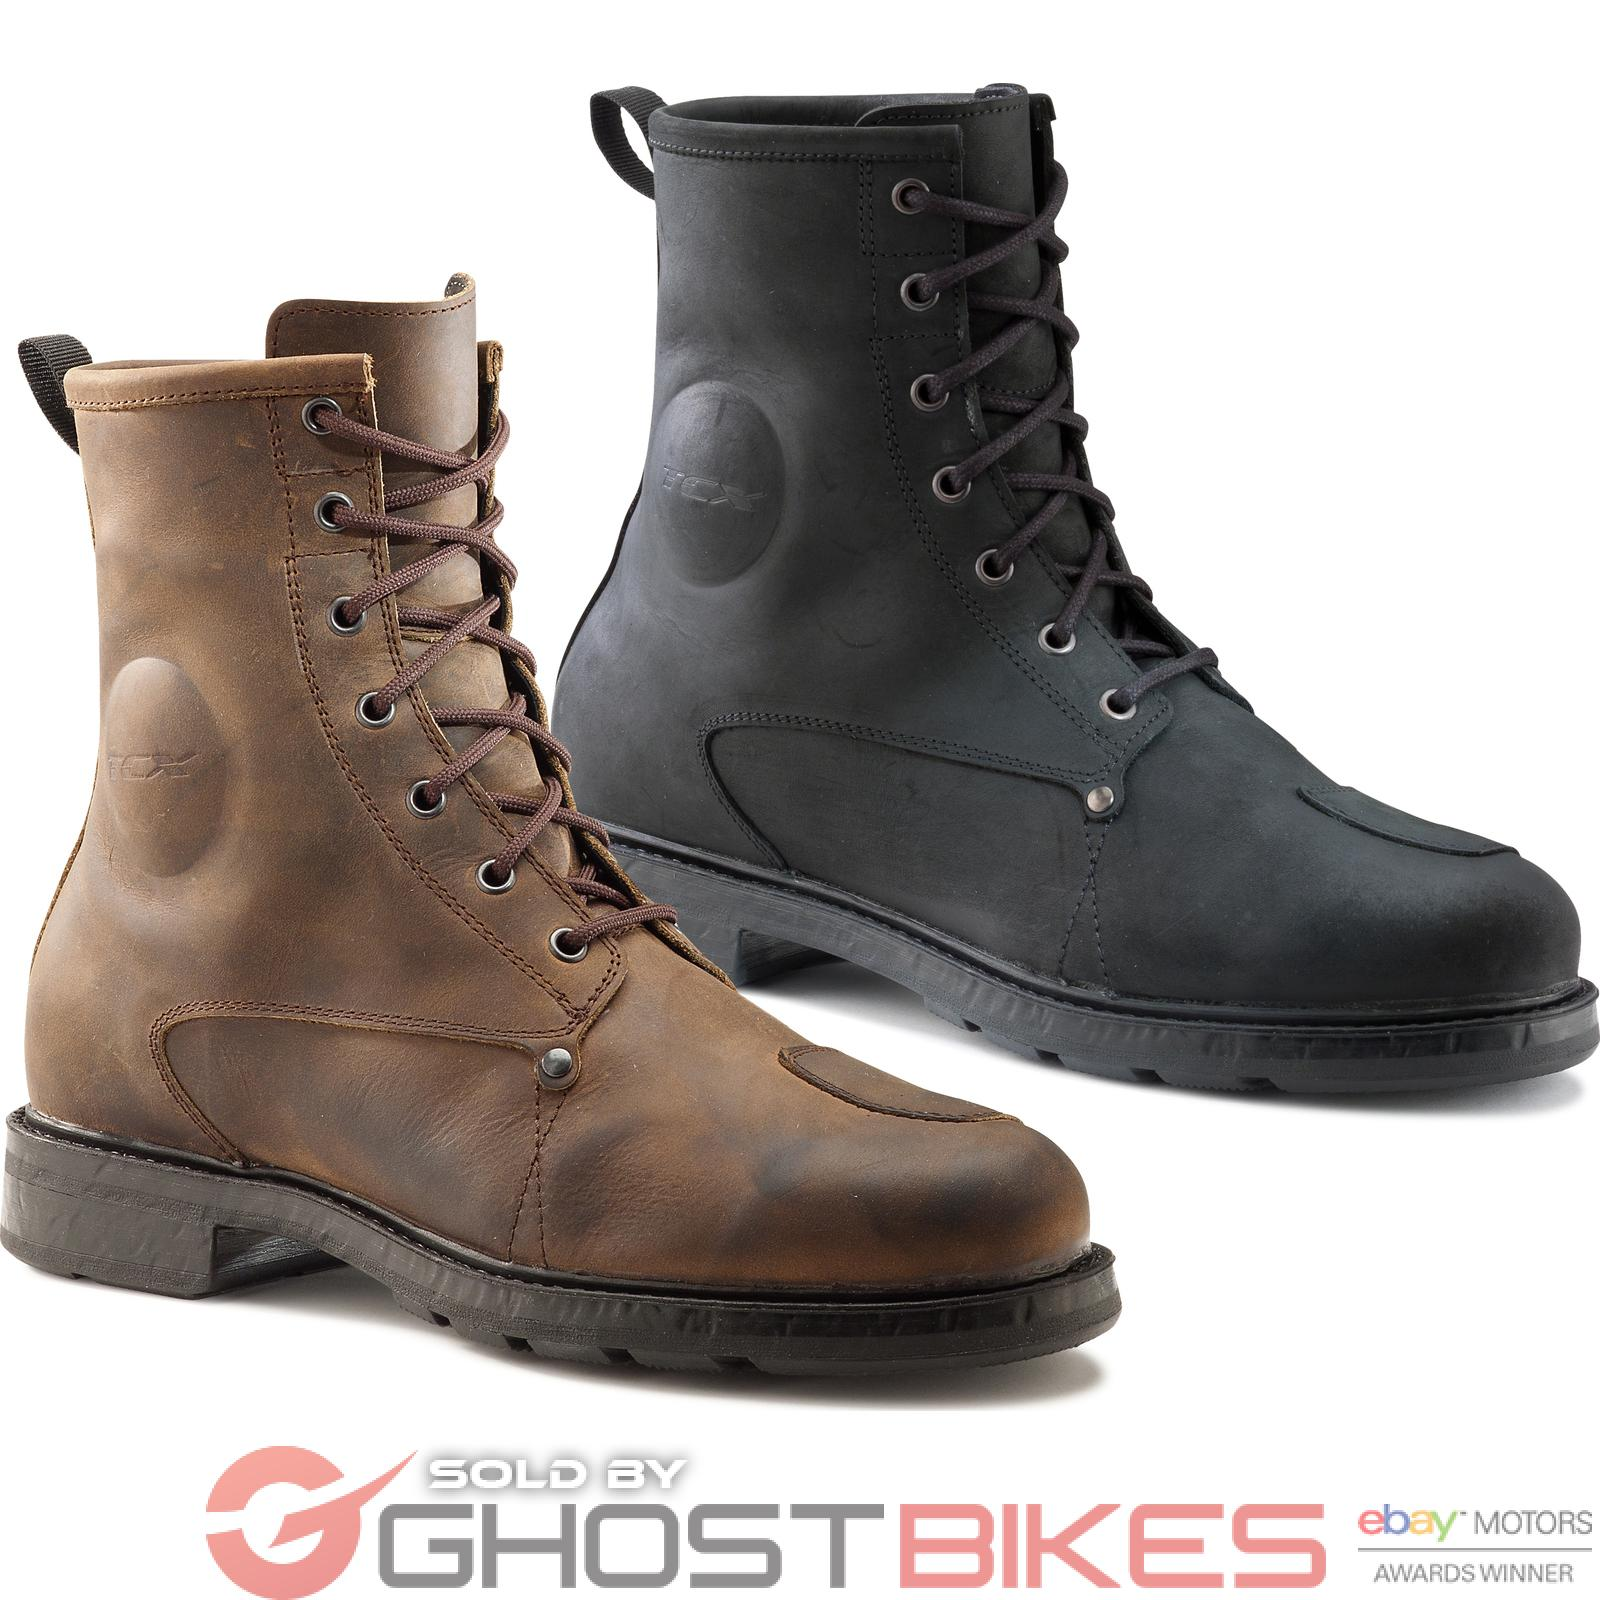 TCX X-Blend WP Motorcycle Boots Waterproof Vintage Leather Urban All Sizes Shoes